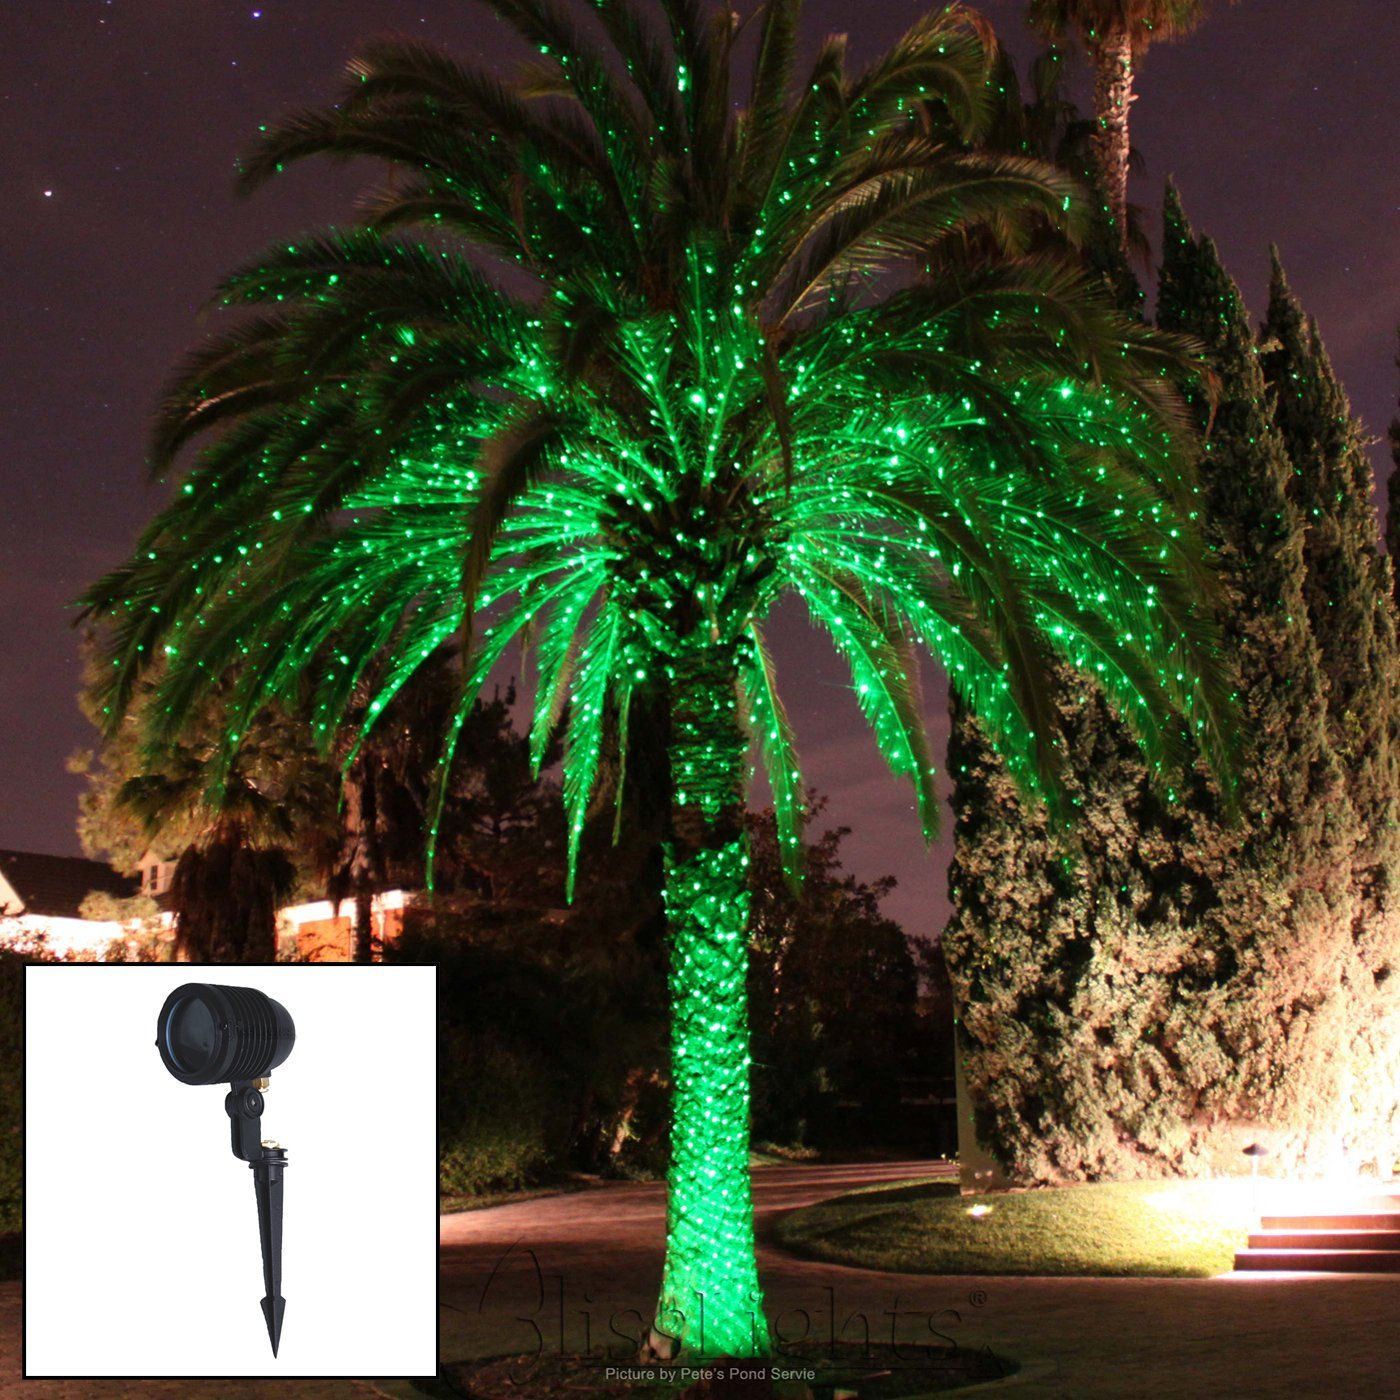 Blisslights Spright Gwt Blisslight Green Landscape Laser Projector Spot Light Black Landscape Lighting Outdoor Landscaping Outdoor Landscape Lighting